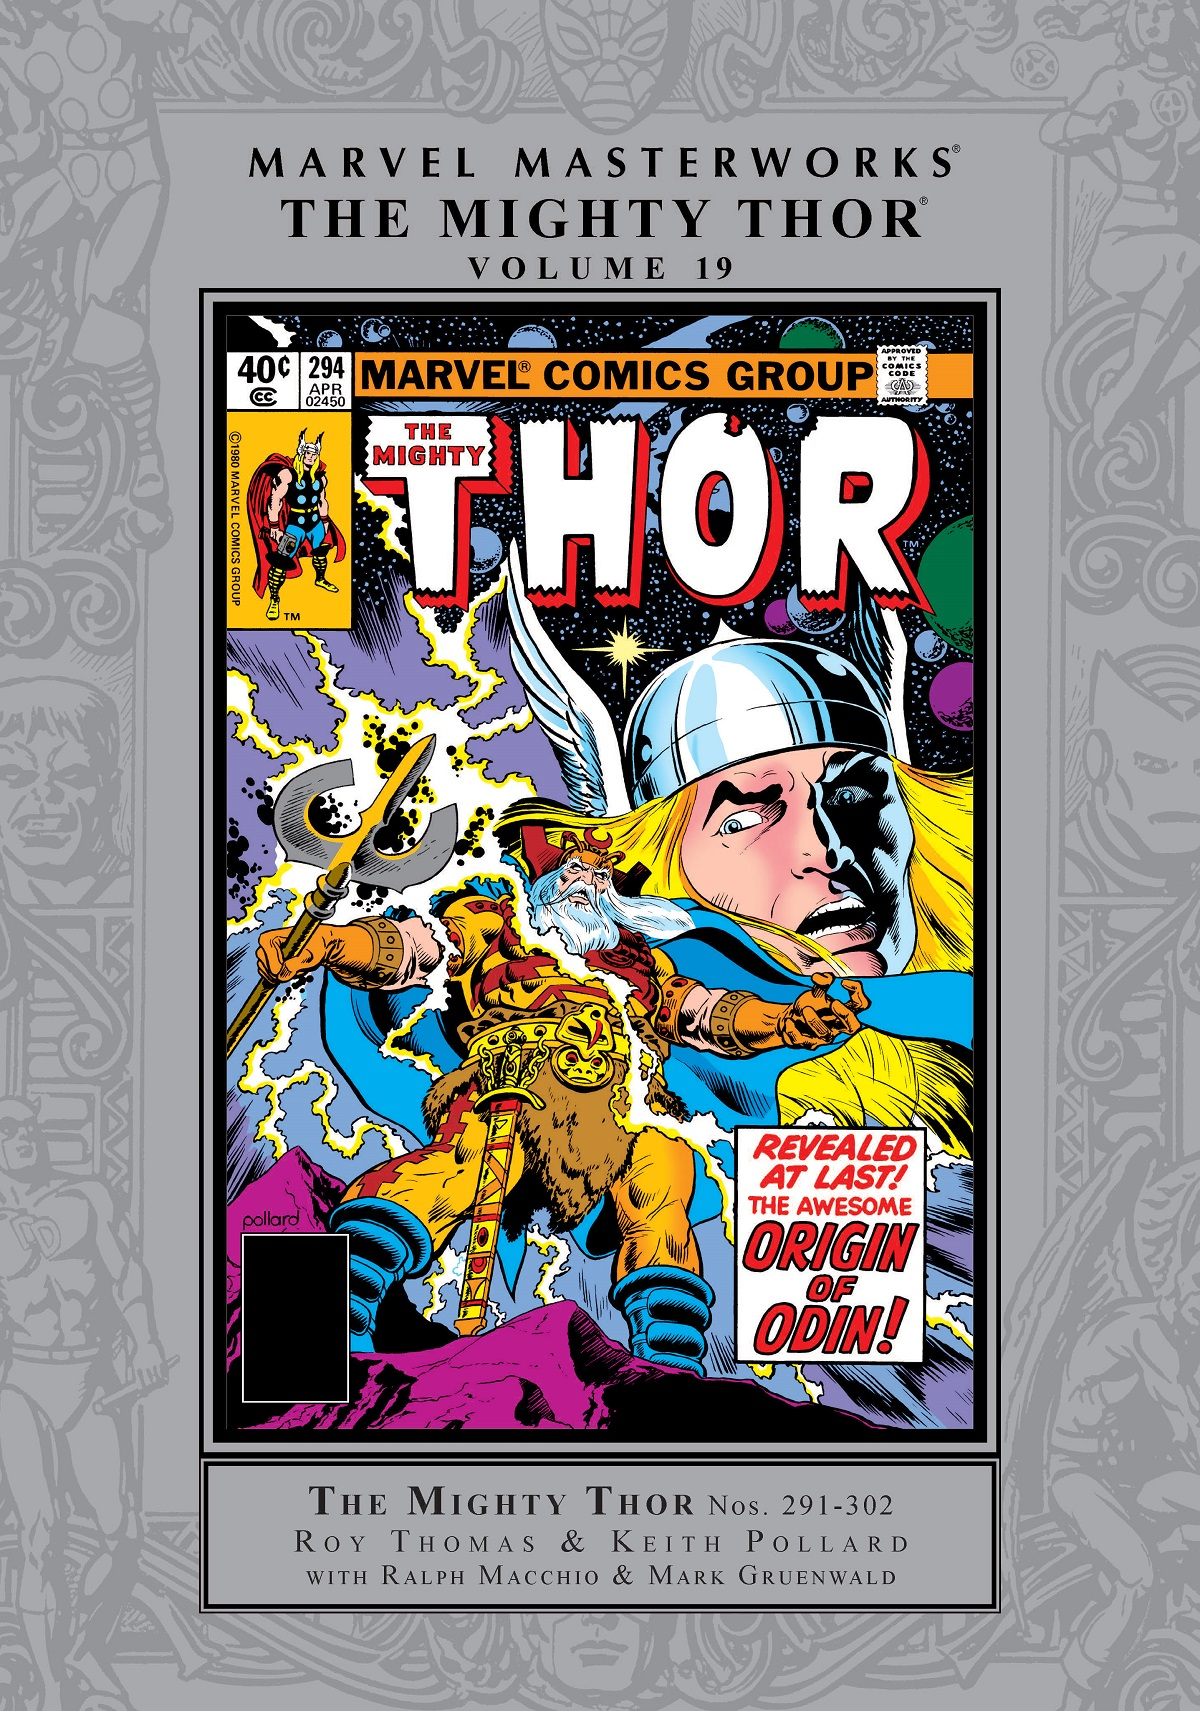 Marvel Masterworks: The Mighty Thor Vol. 19 (Hardcover)